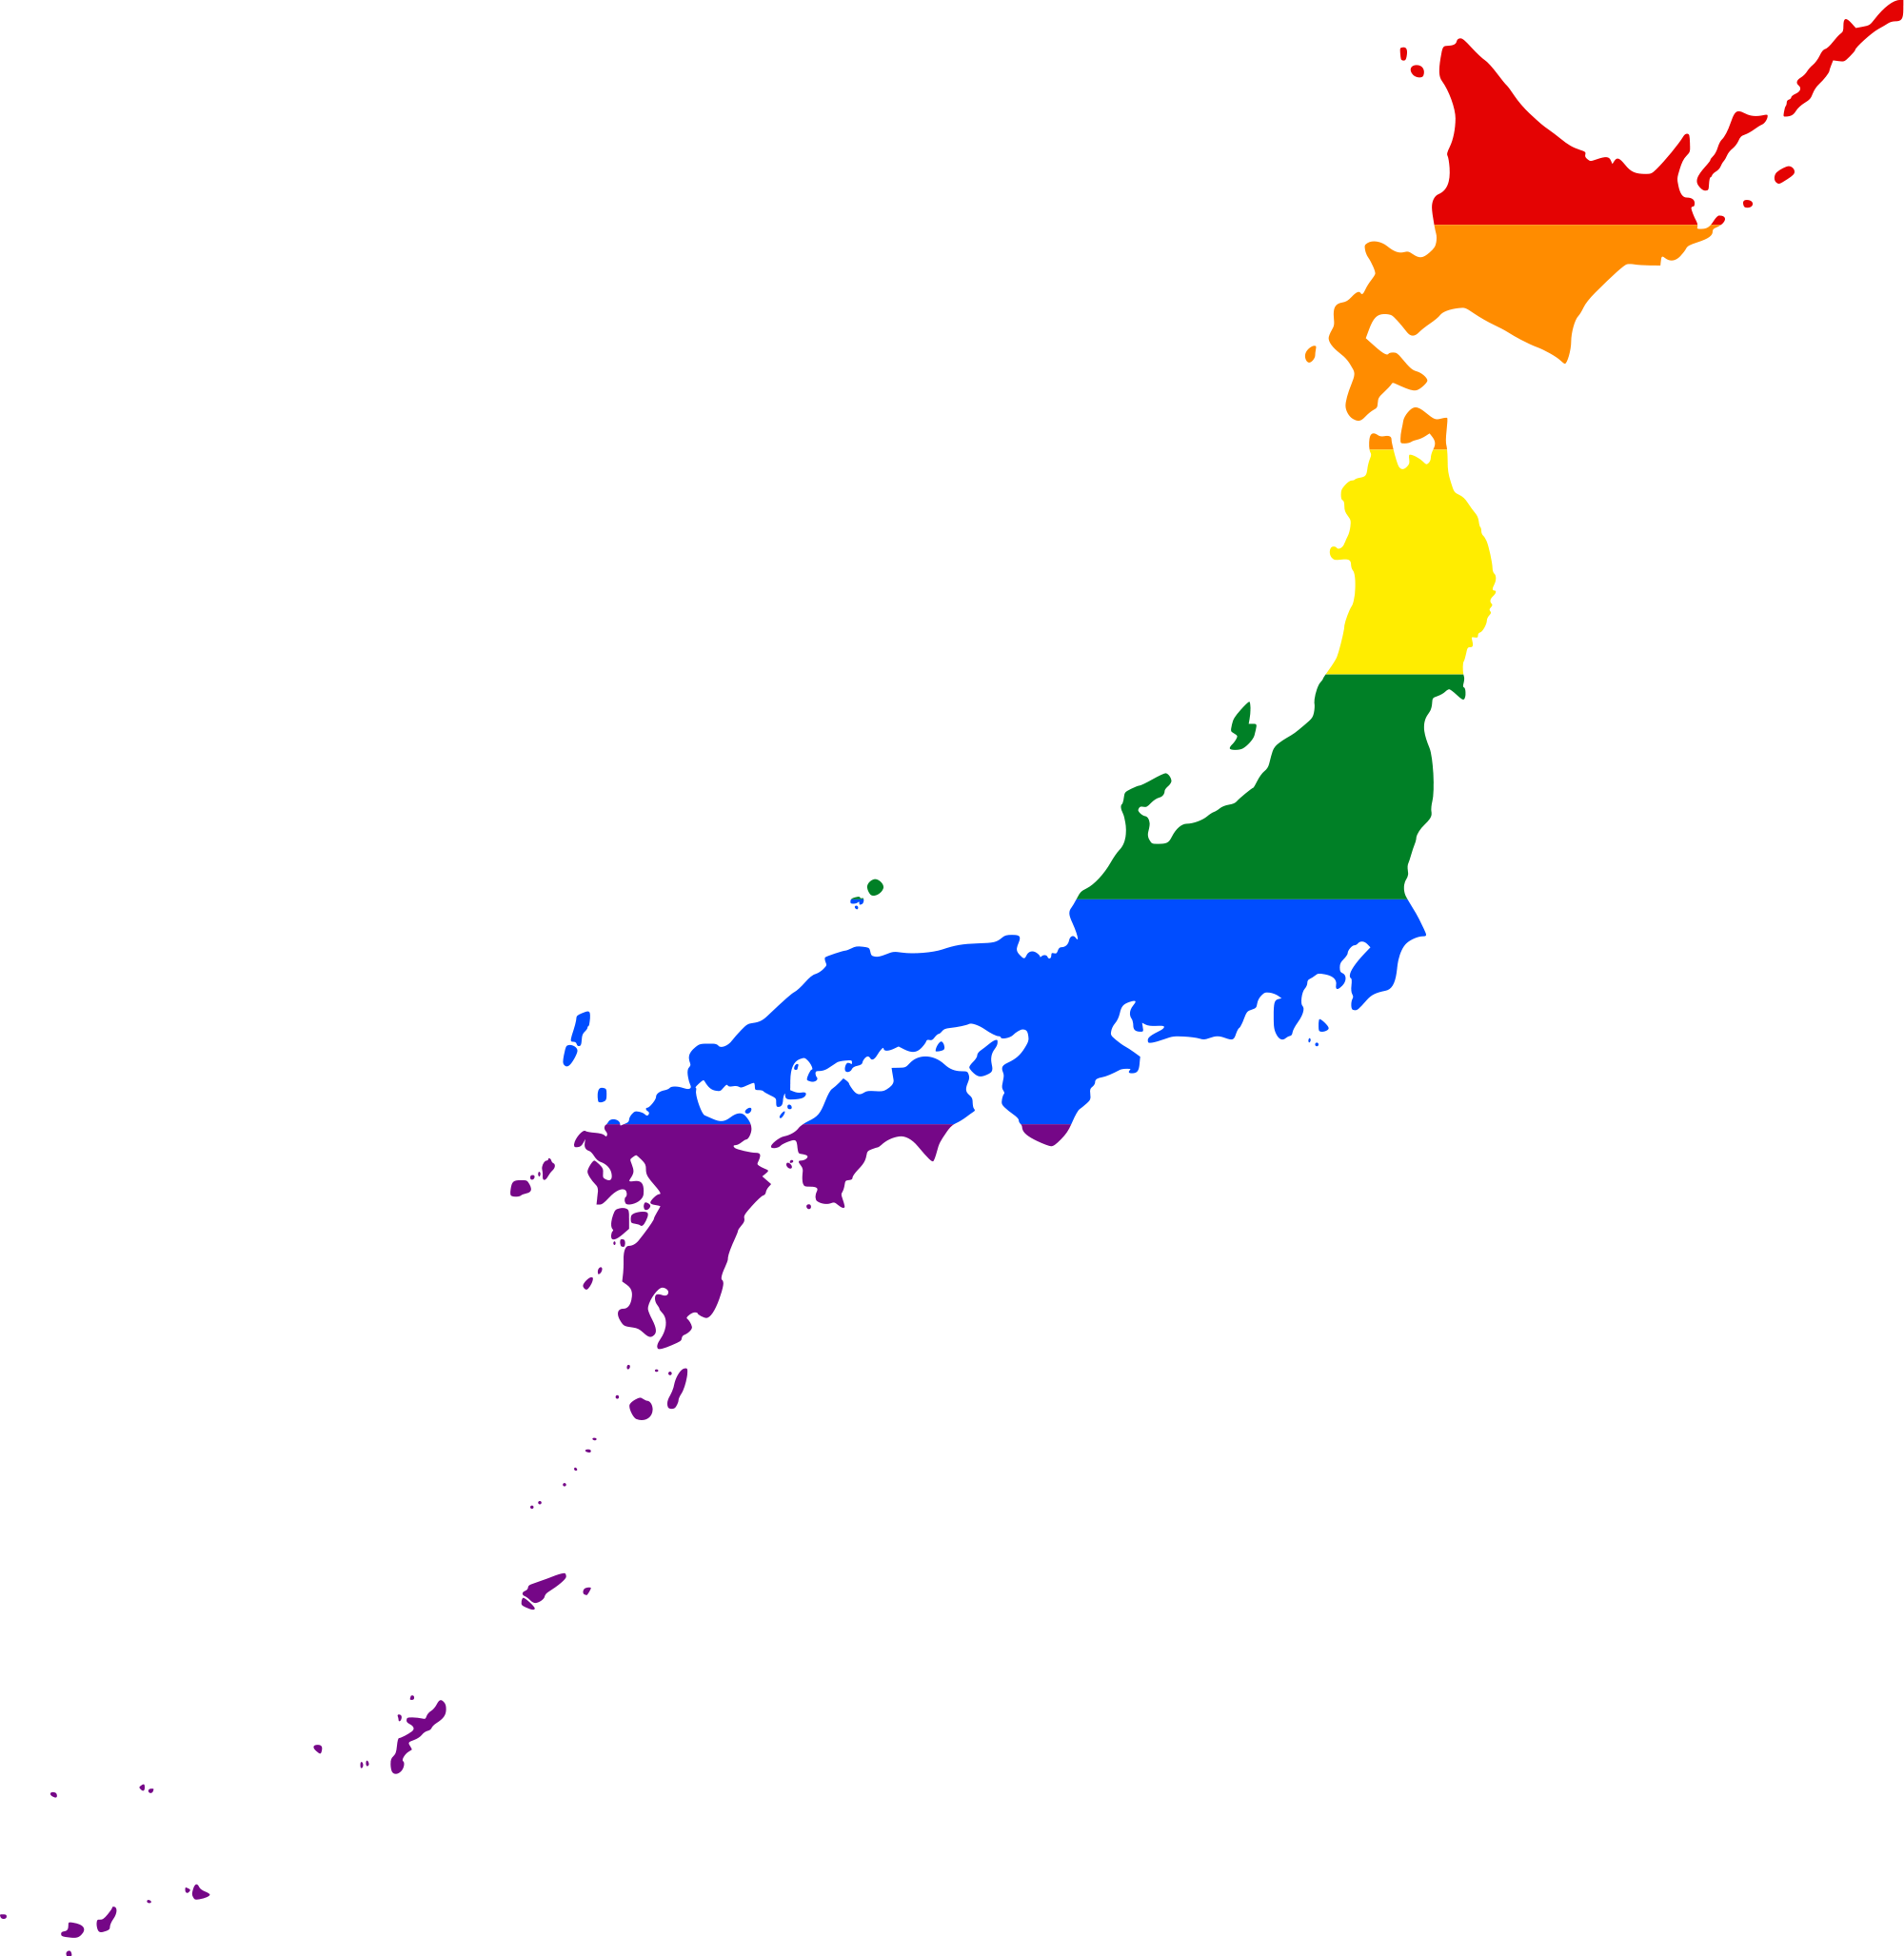 Japan country png. Lgbt rights in wikipedia